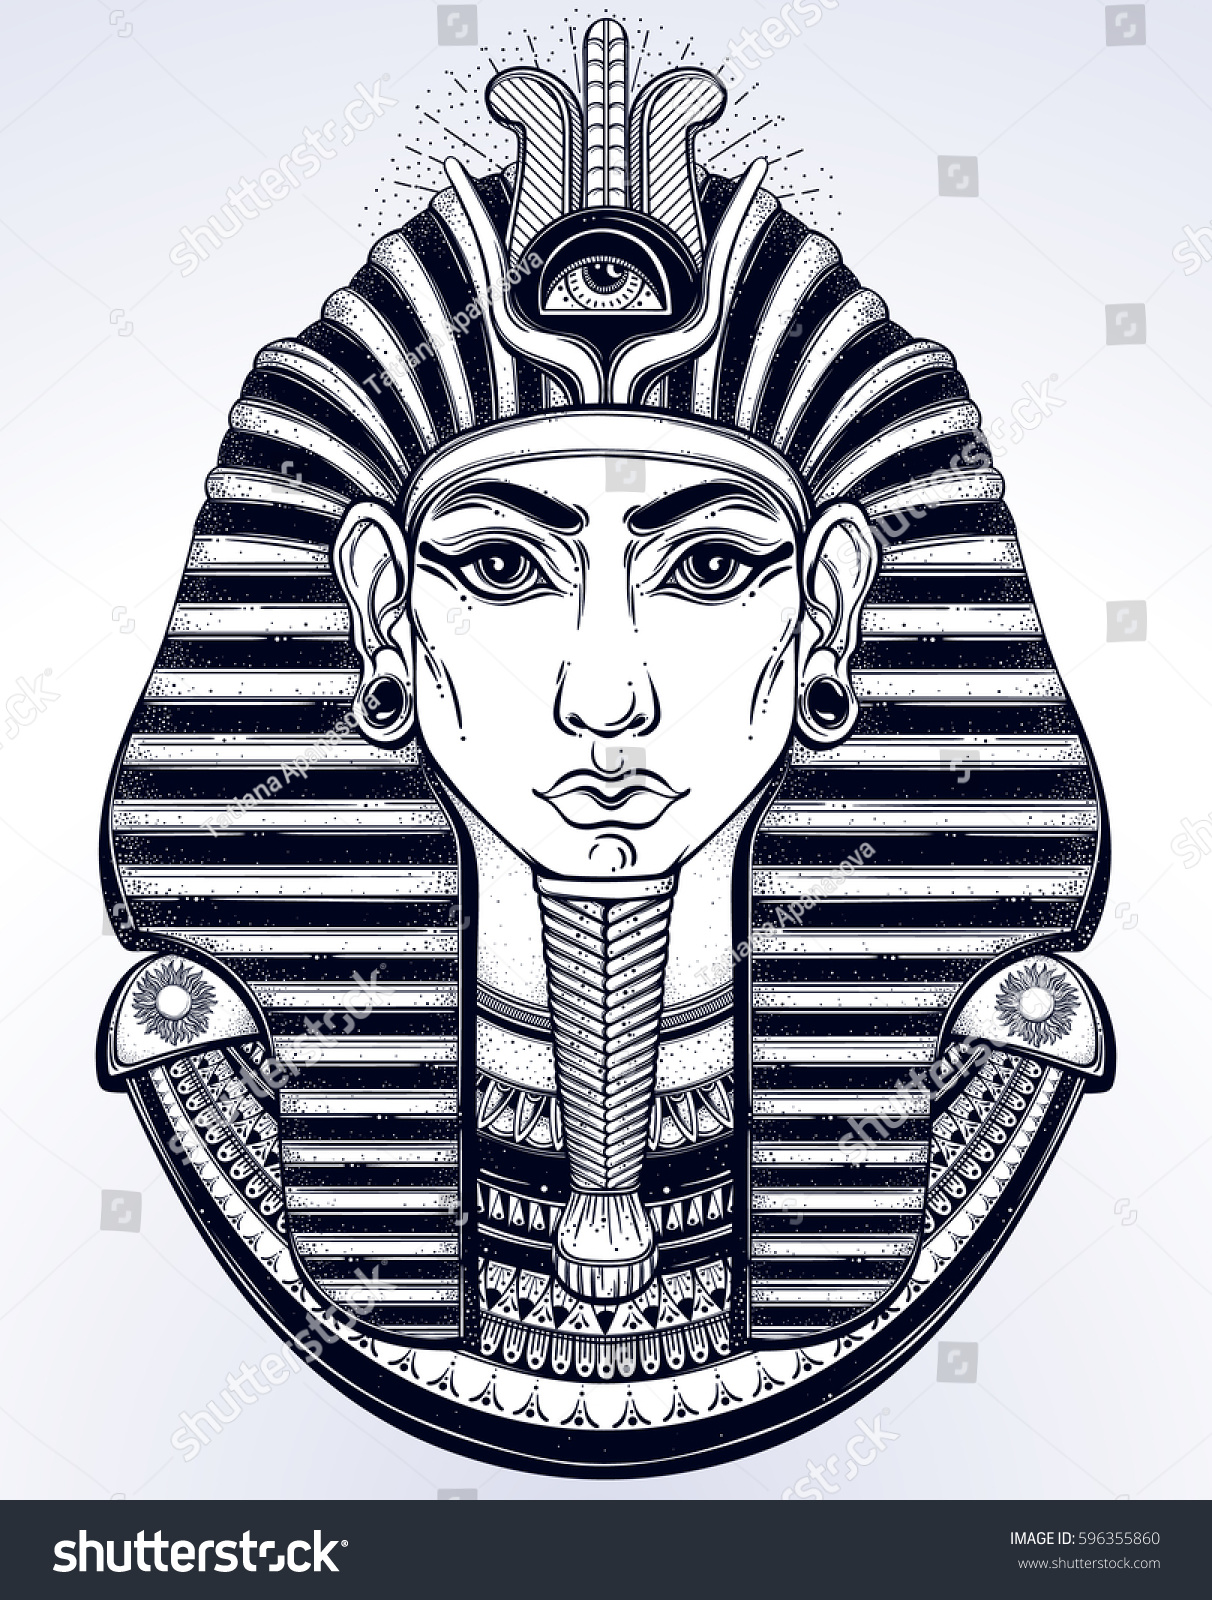 83951e5fc Hand-drawn vintage illustration of the ancient Egyptian Pharaoh's head. Tattoo  art, graphic, t-shirt design, postcard, poster design, coloring books.